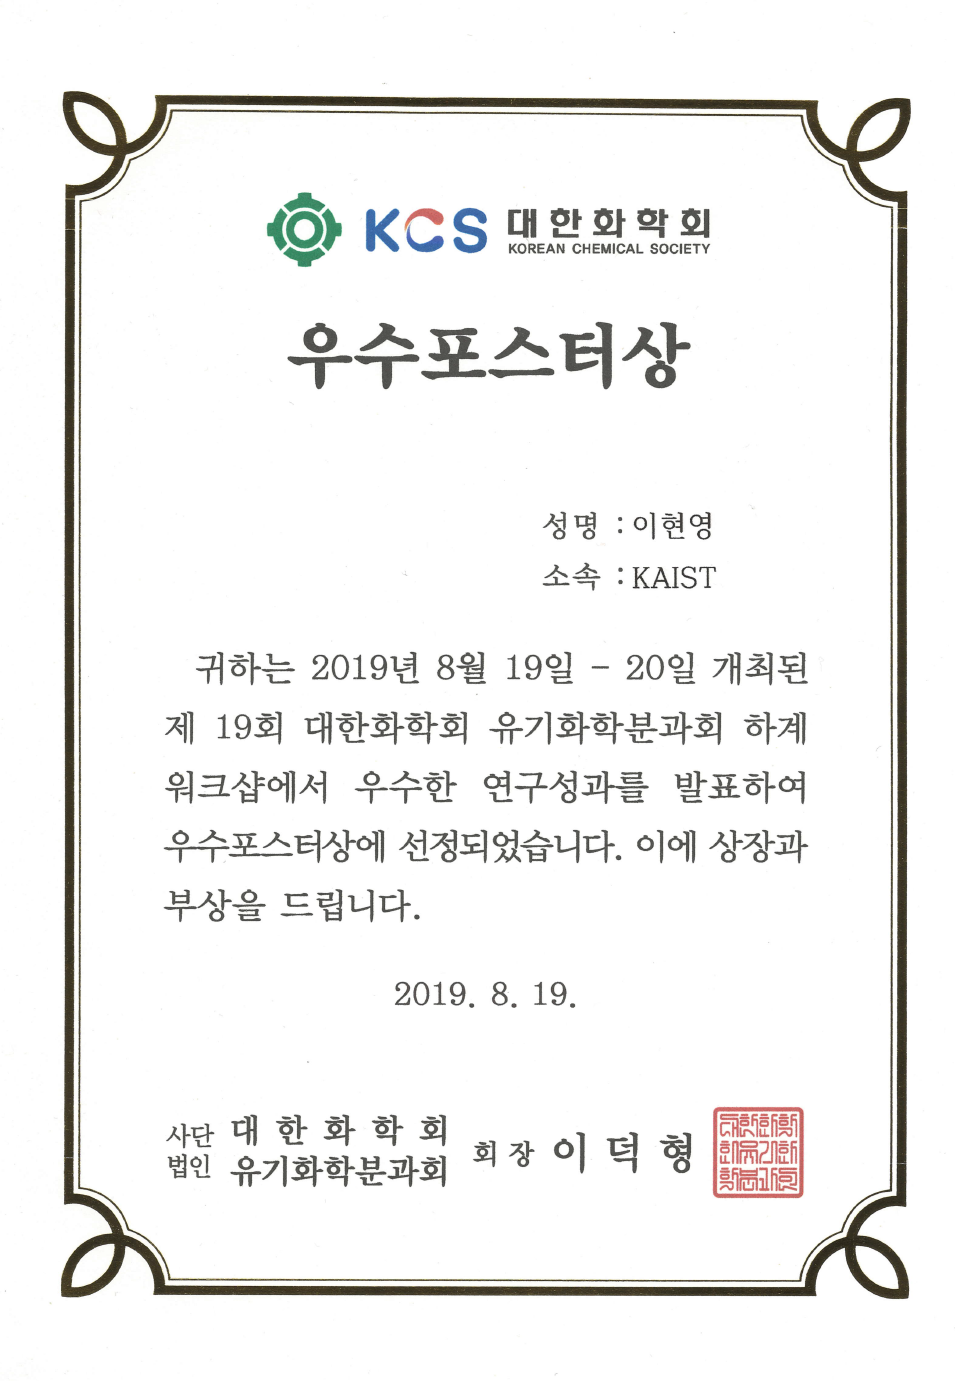 Hyeonyeong Lee  Recieved Exllence Poster Award in Organic Chemistry Division of KCS Summer Workshop 사진